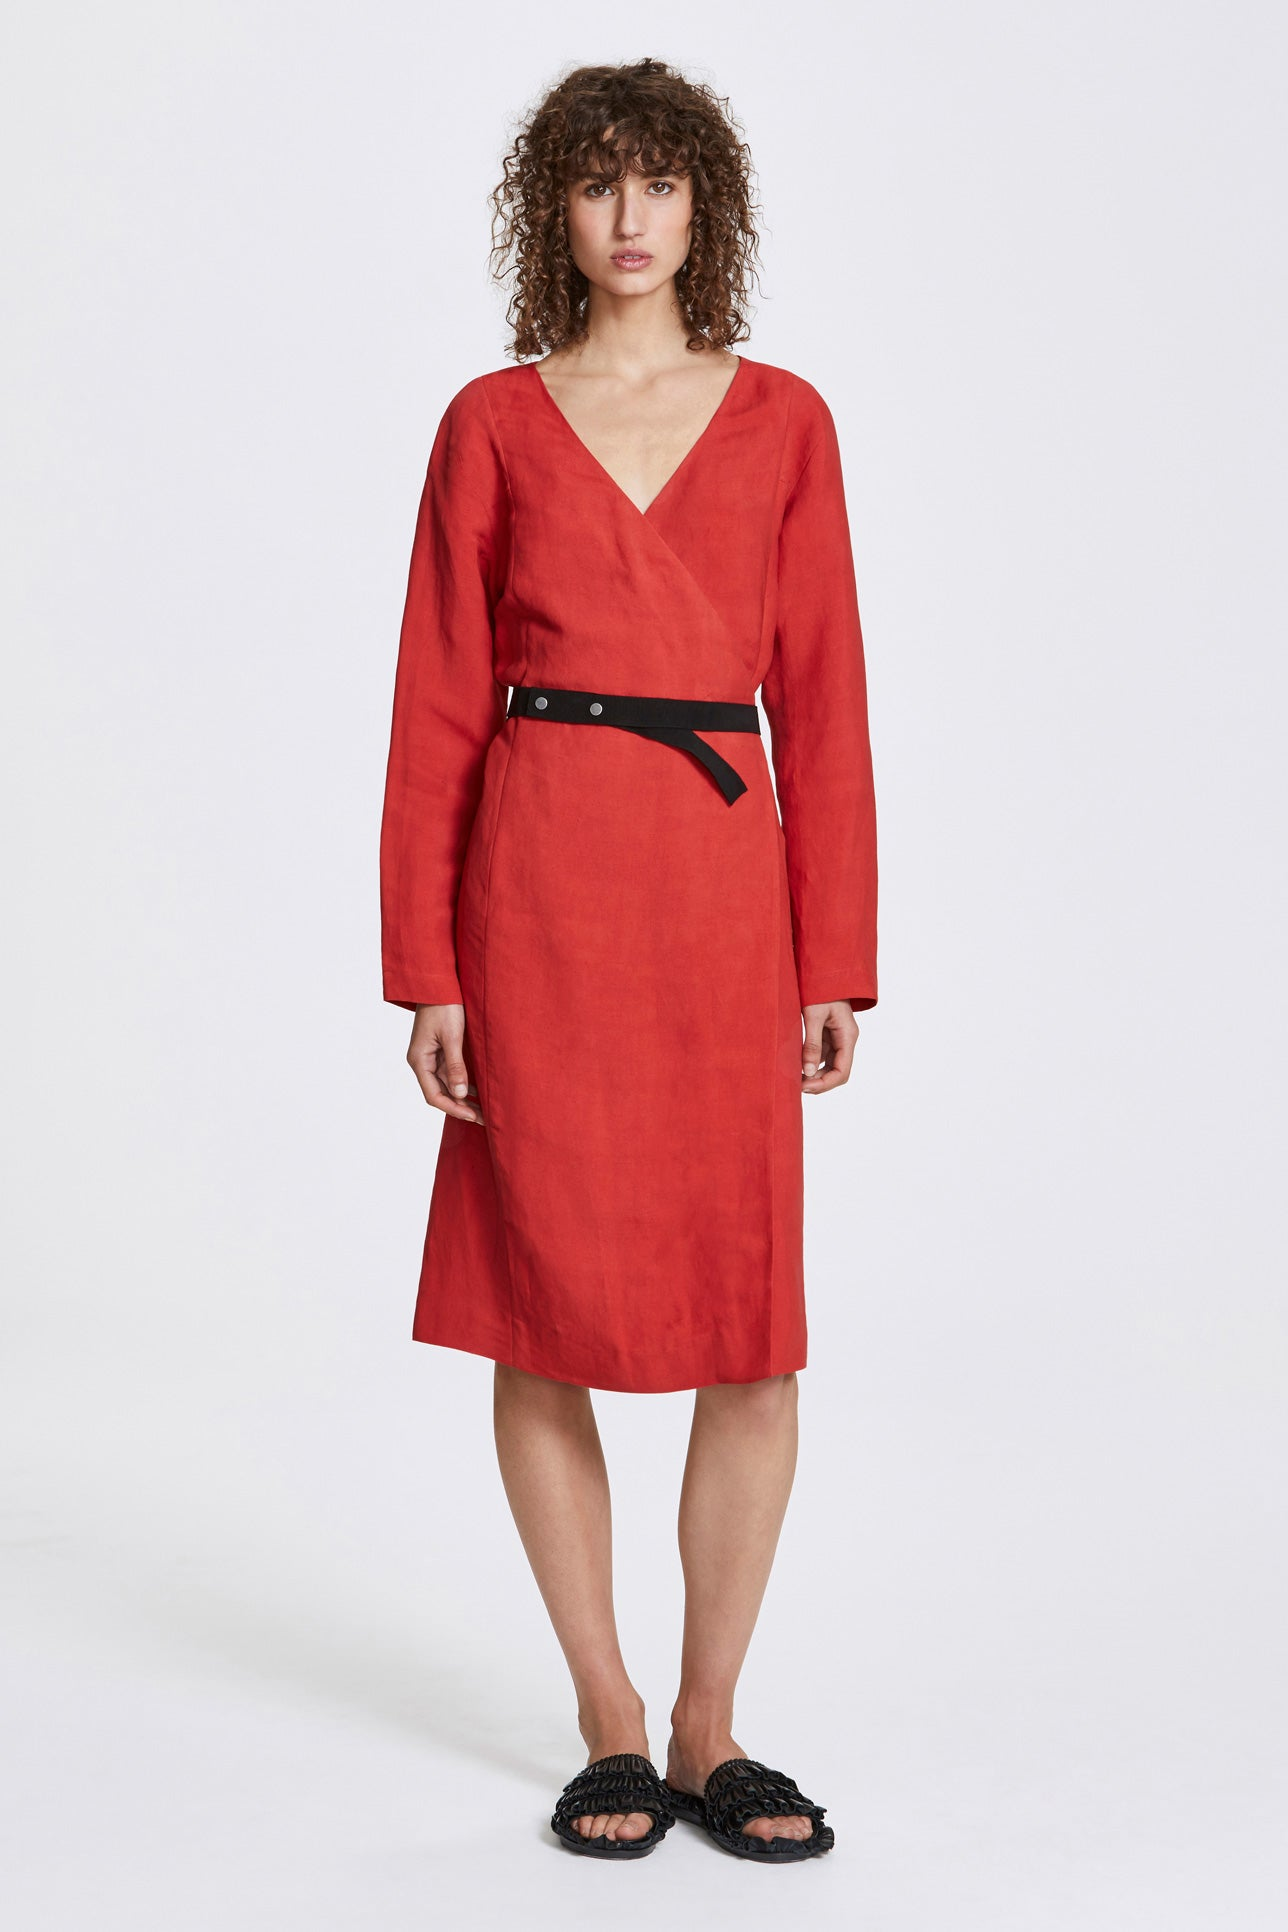 Bi-stud wrap dress - Linen blend - Lava red